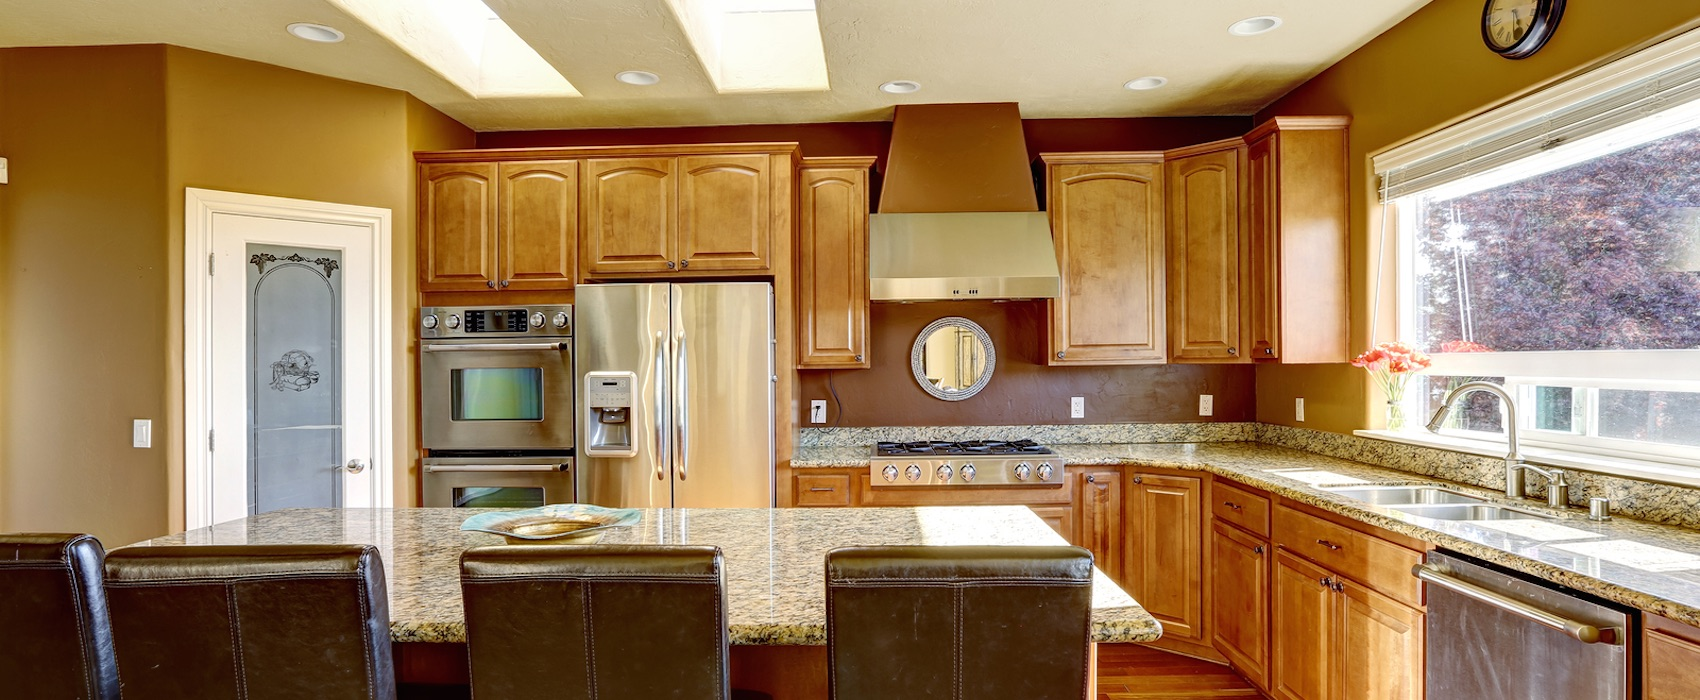 Granite Depot Denver Colorado | Granite Countertops Denver Colorado |  Kitchen Cabinets Denver | Kitchen Remodeling Denver